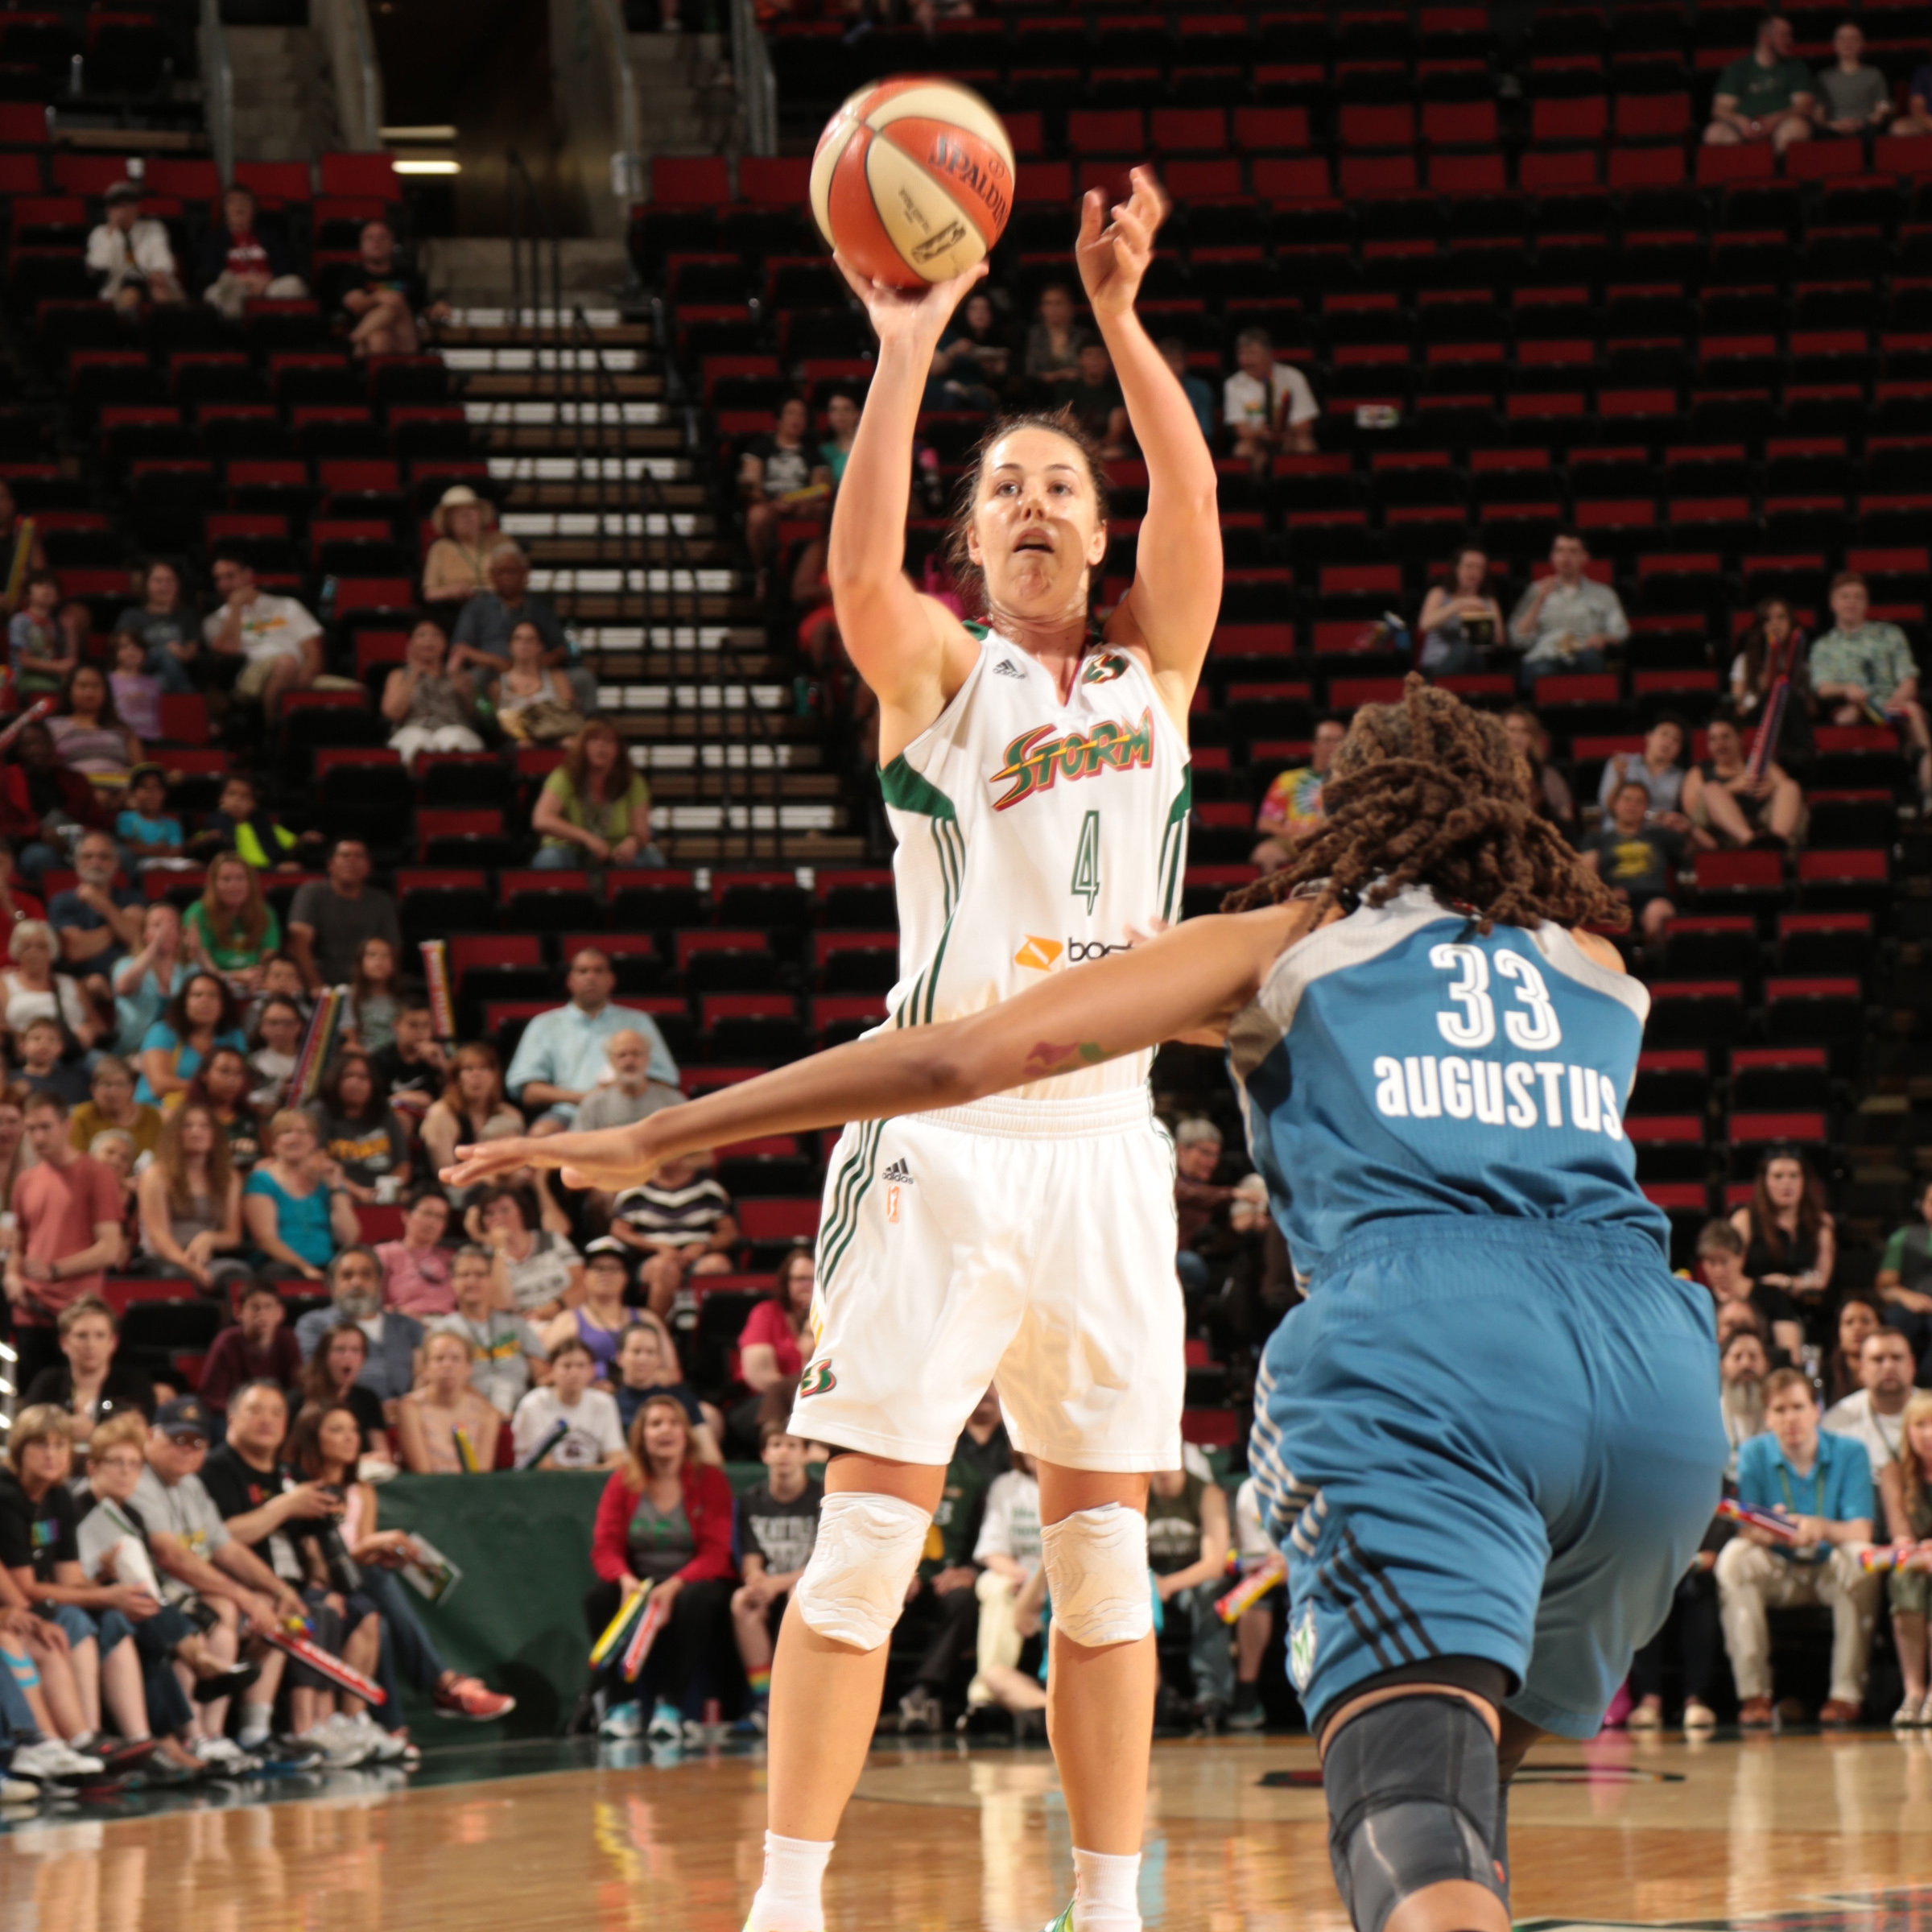 Storm guard Jenna O'Hea led Seattle, scoring 17 points in the loss.